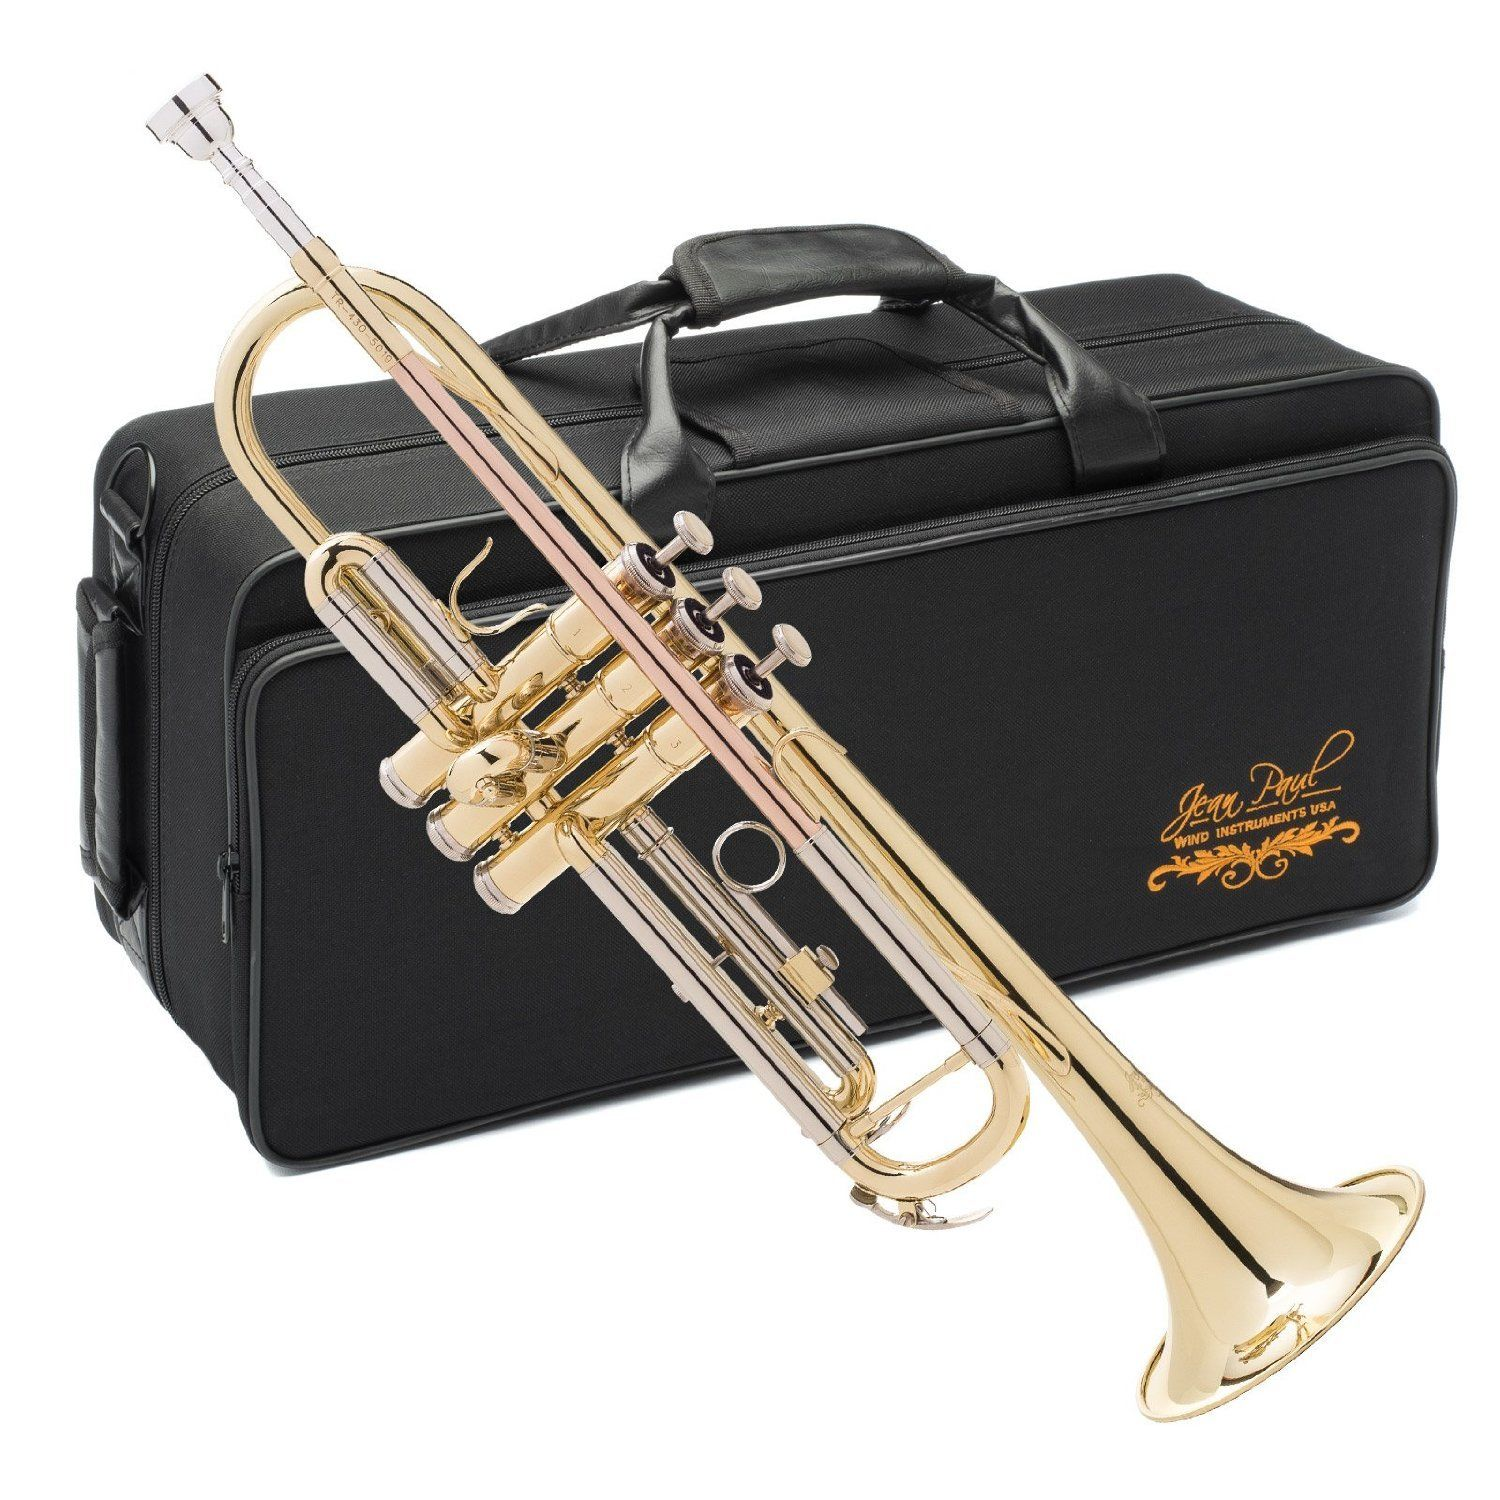 Jean Paul USA TR-430 Standard Trumpet With Adjustable Third Trigger And Carrying Case